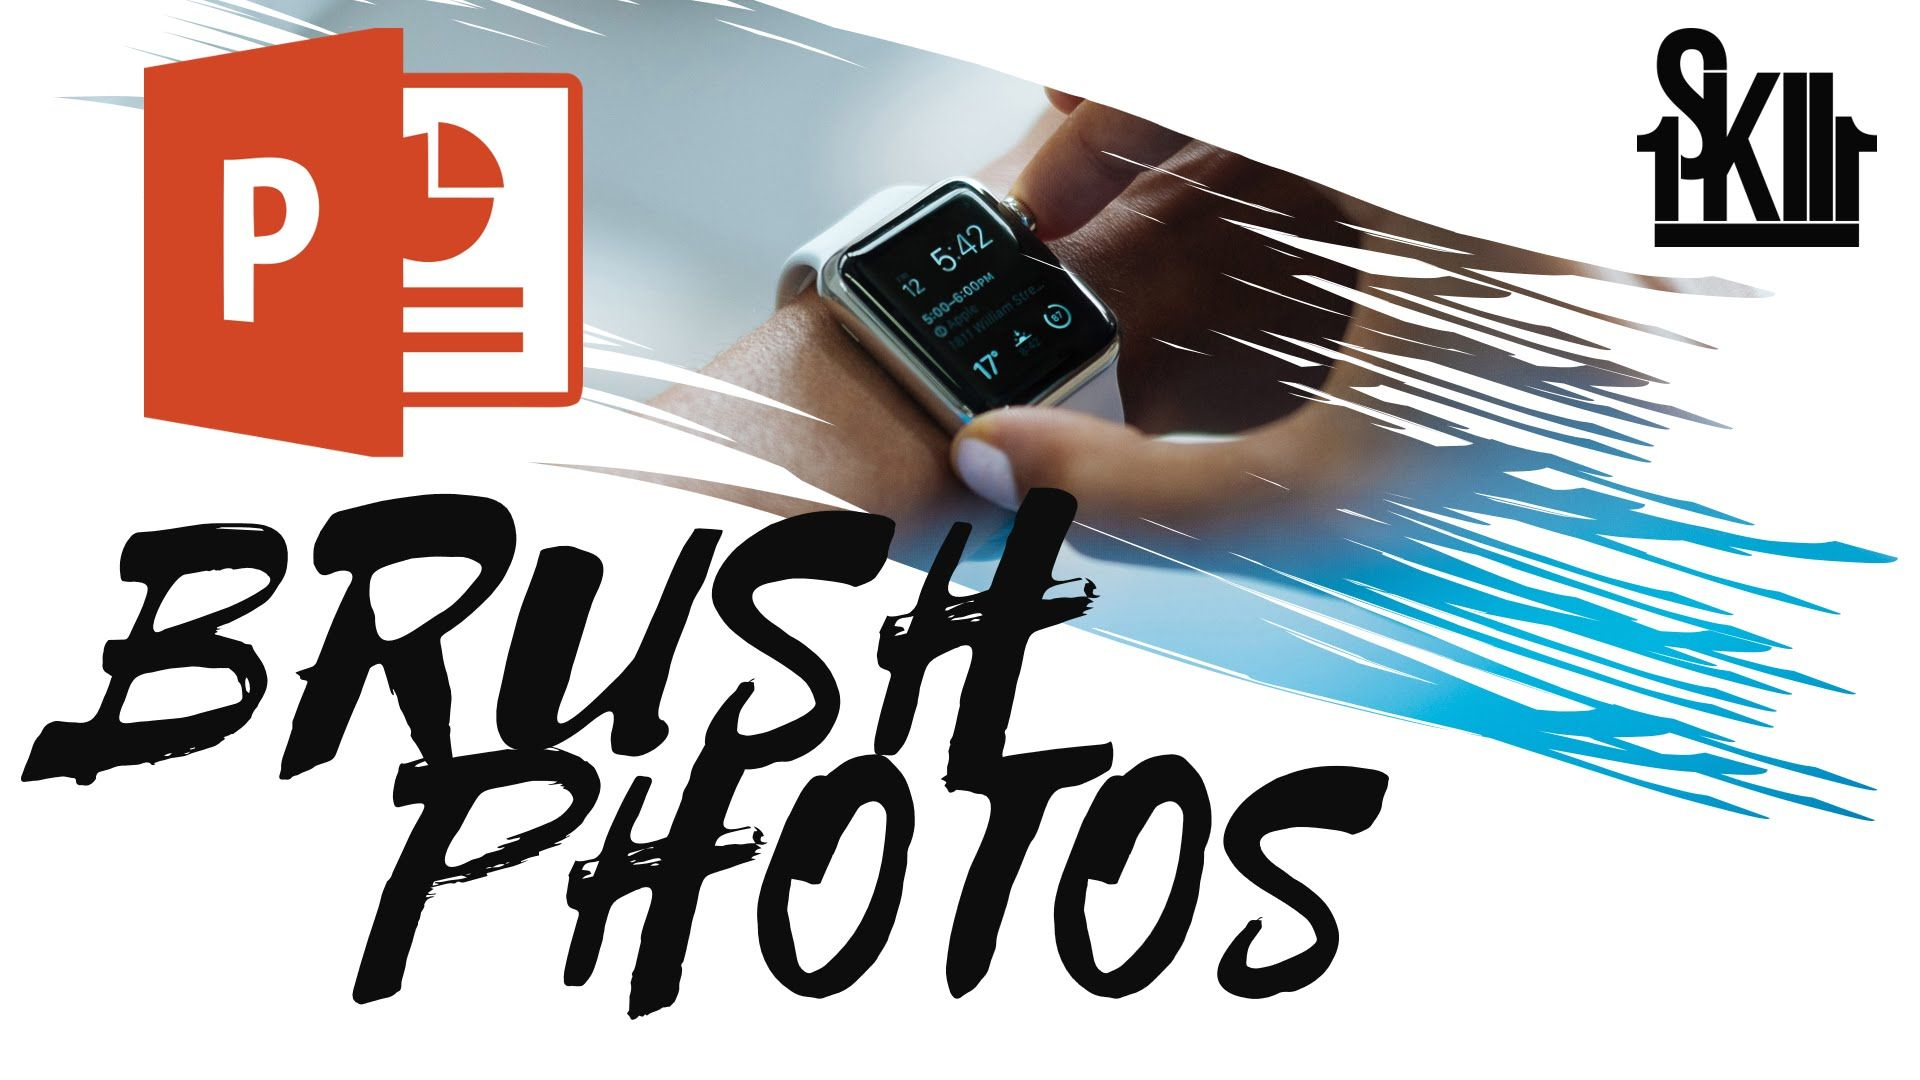 How to make awesome brush photos in powerpoint artsy pinterest how to make awesome brush photos in powerpoint toneelgroepblik Image collections